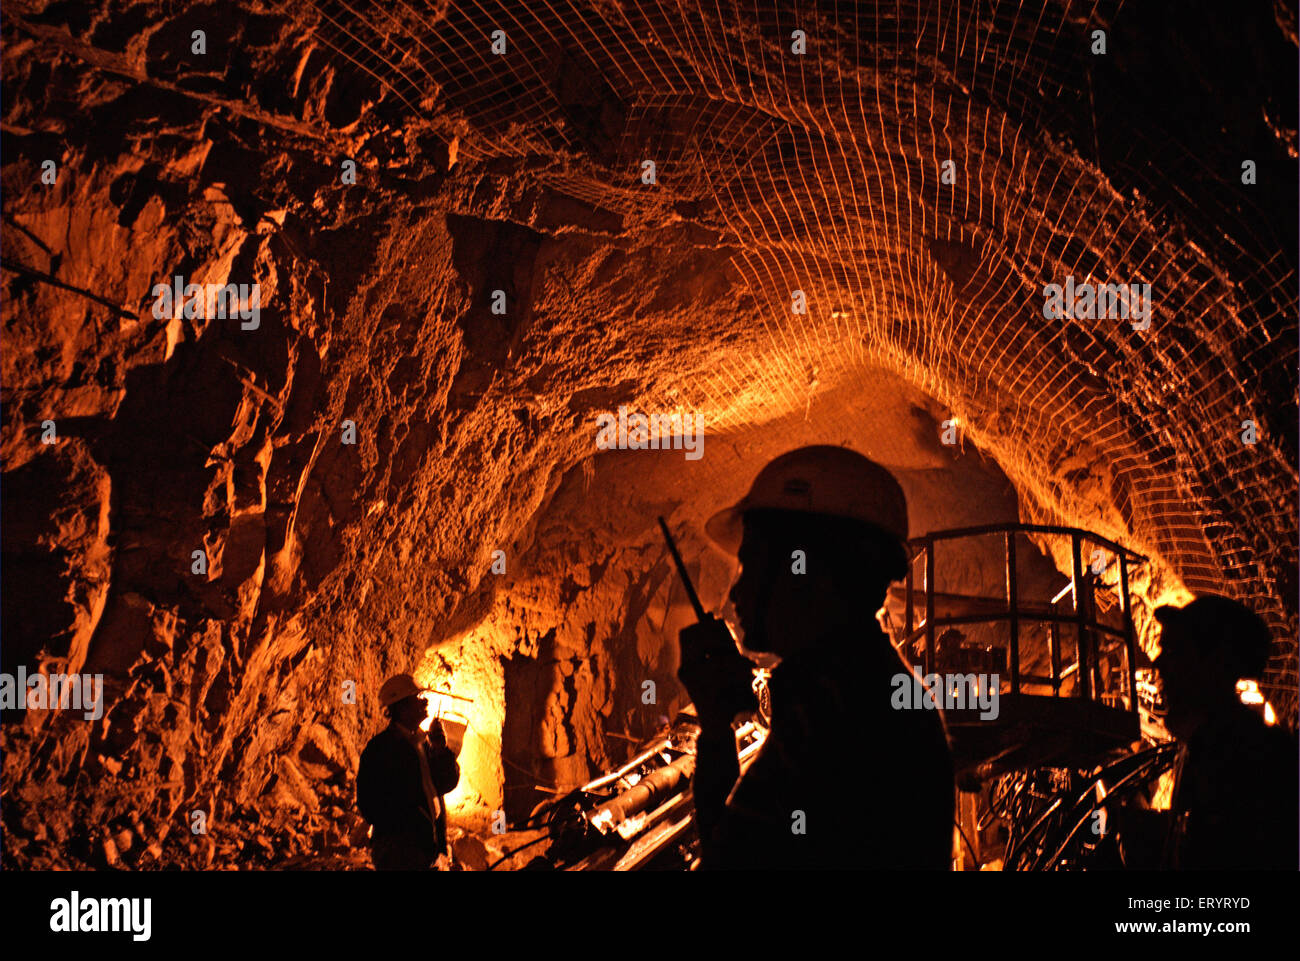 Engineers inspect tunnelling at site of hydroelectric project ; Uri ; Jammu and Kashmir ; India 6 April 2008 - Stock Image